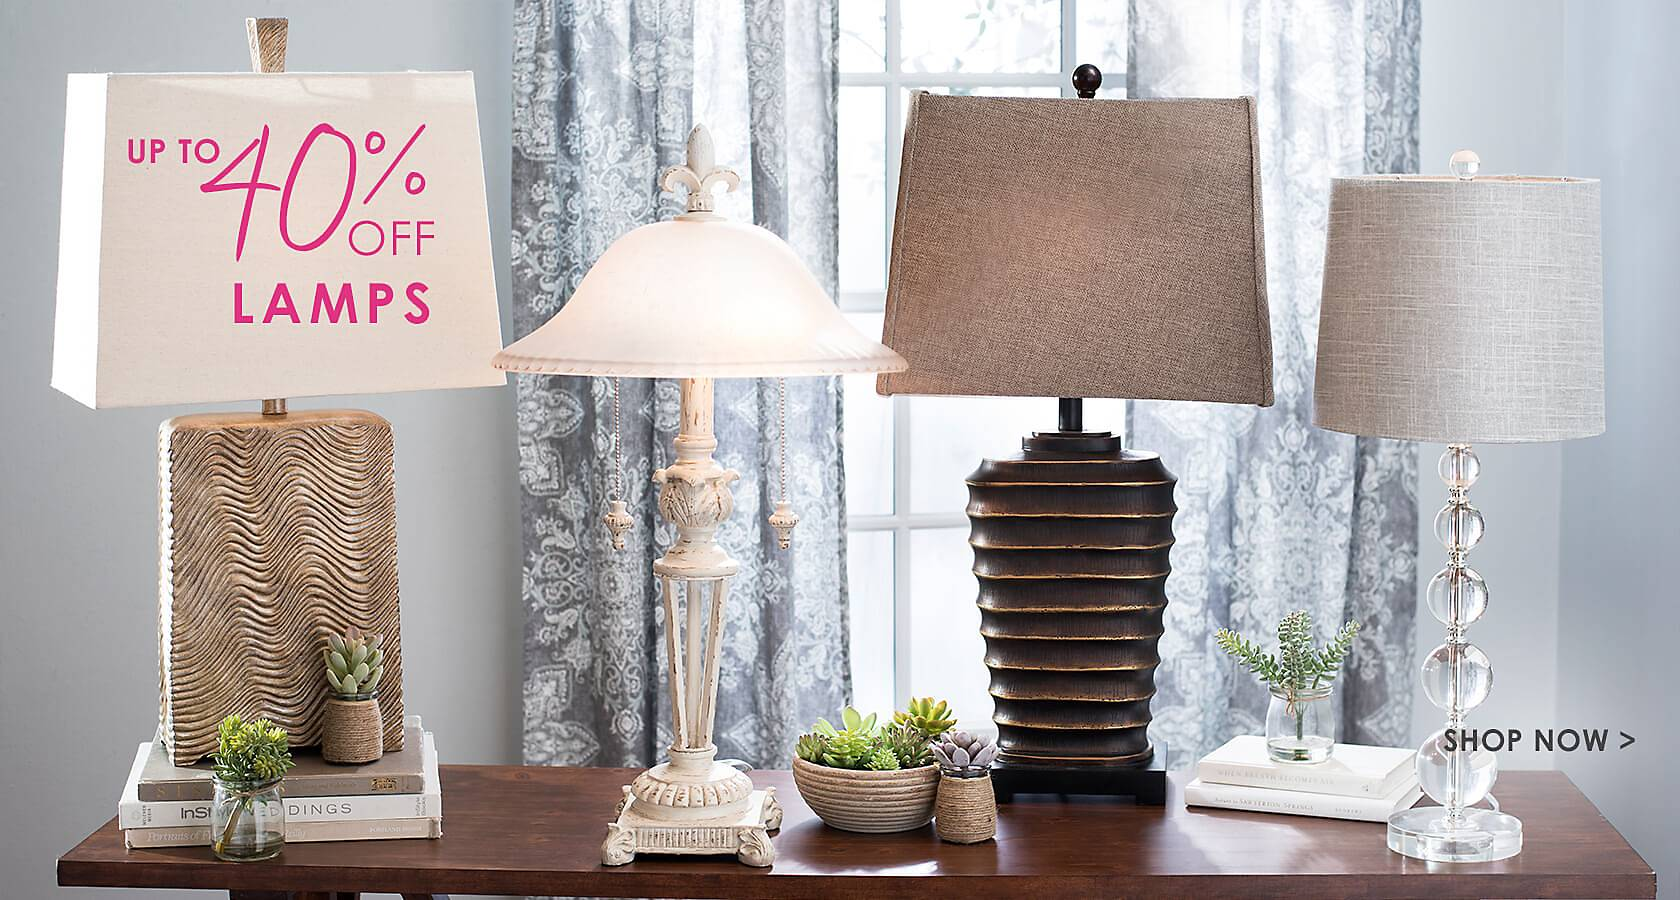 Up to 40% off lamps - Shop Now